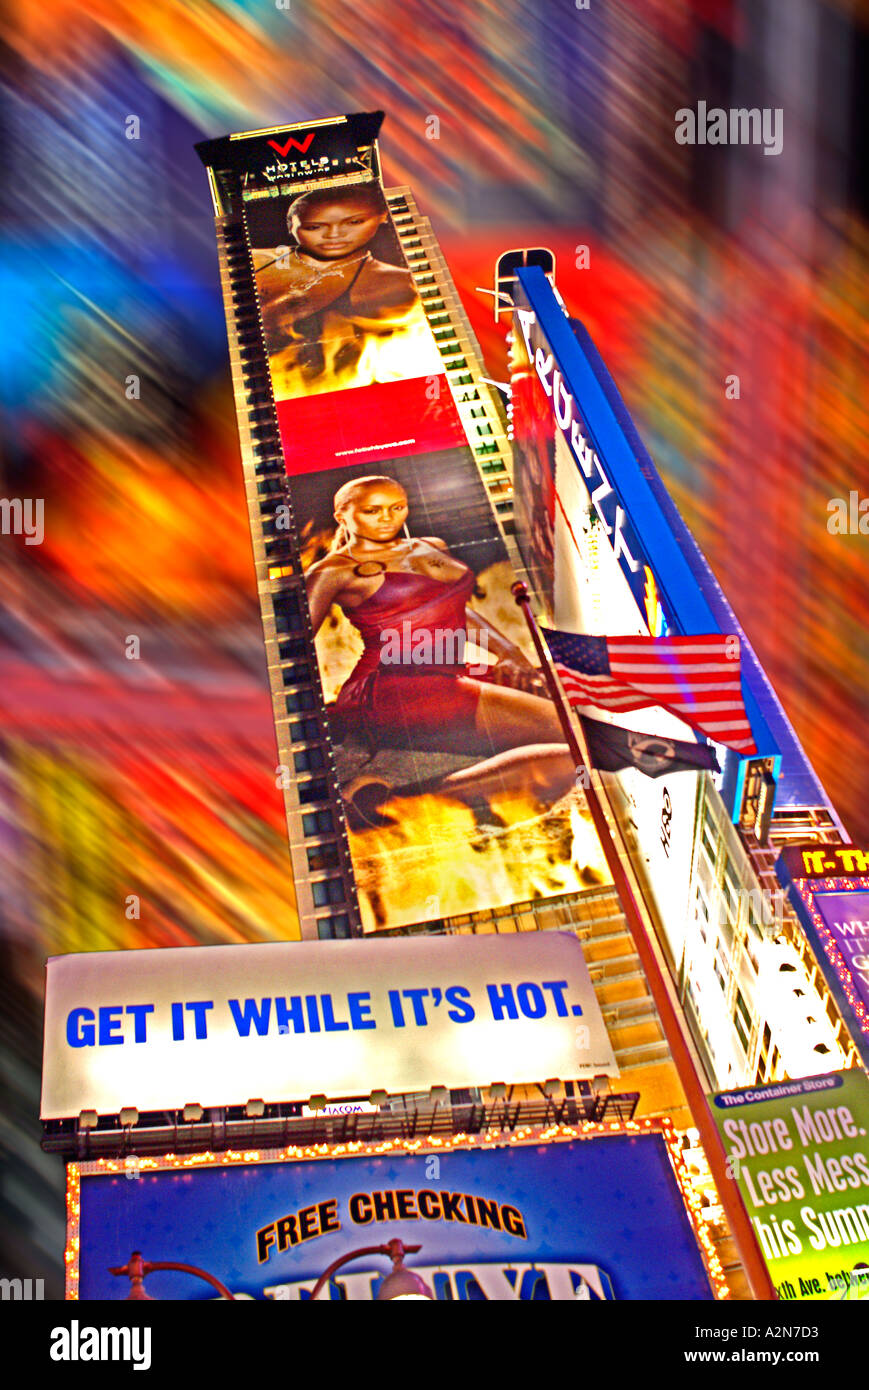 Advertising signs on storefronts in New York City times Square and Broadway - Stock Image